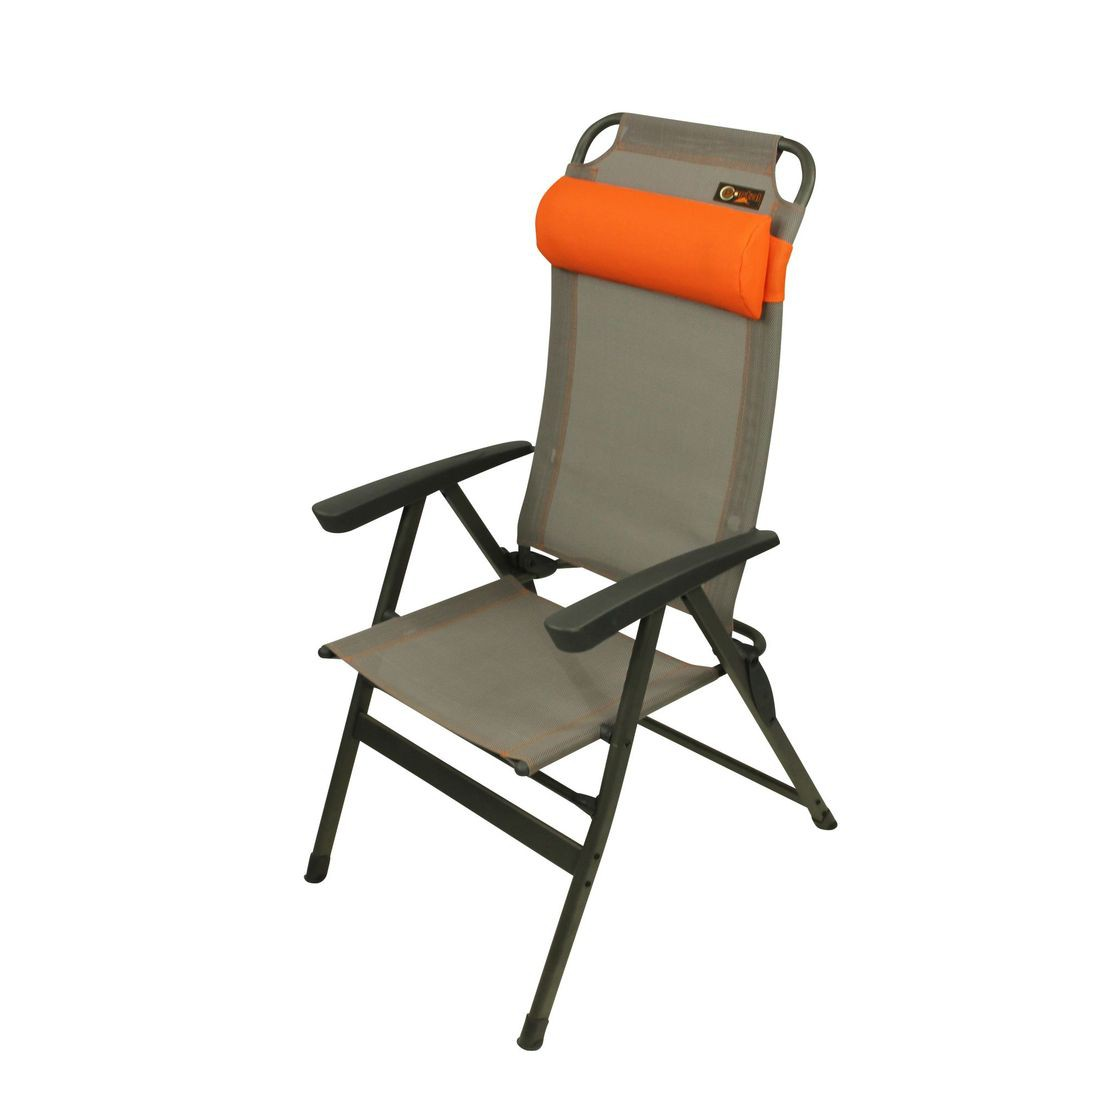 Portal ken aluminium camping chair high back incl for Best folding chairs outdoor